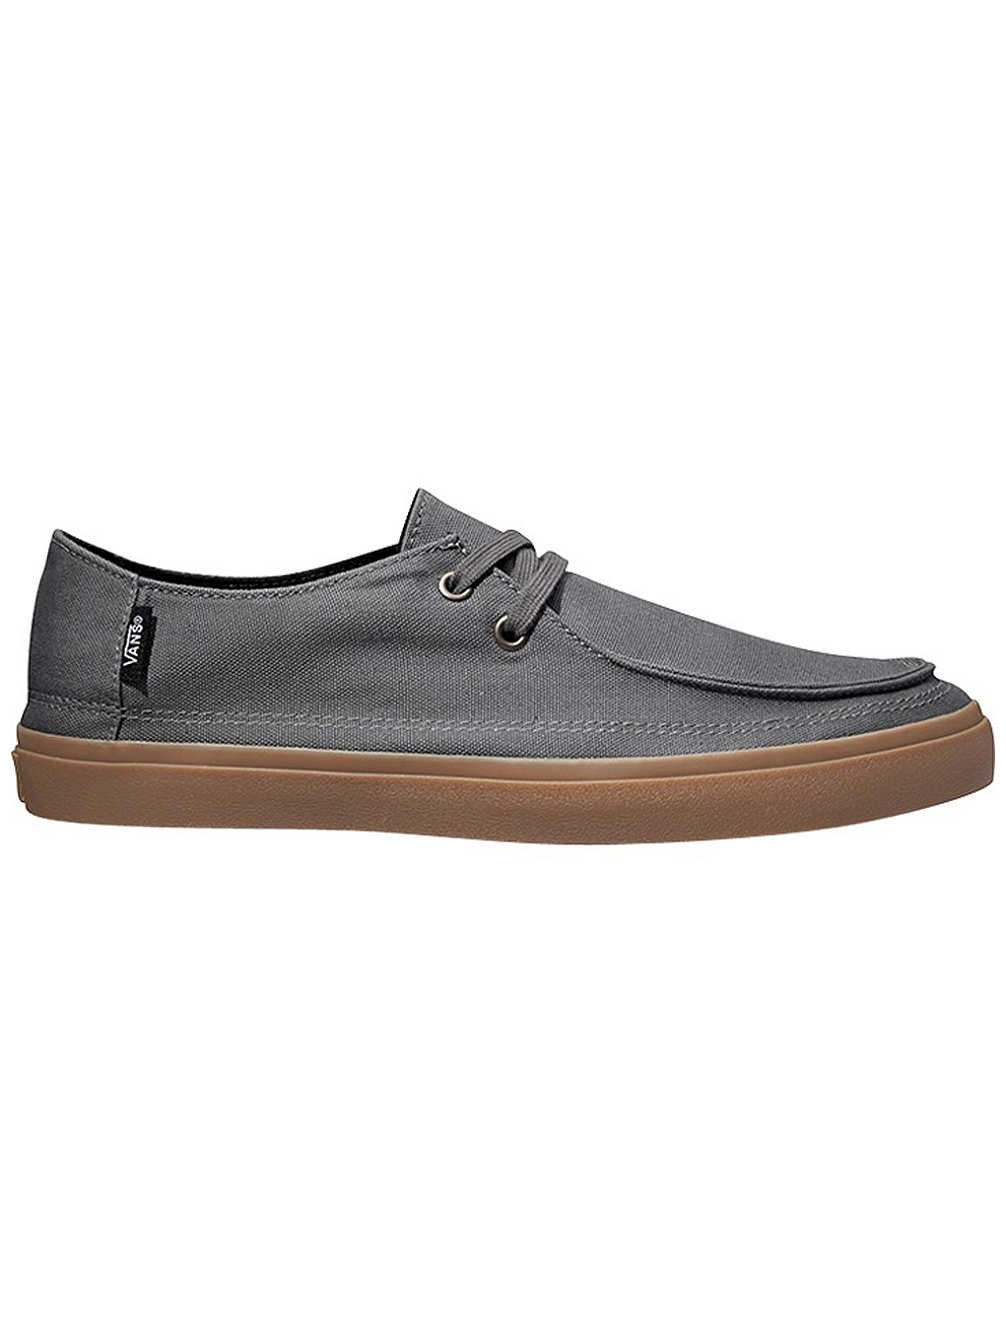 985d563f6beda4 Galleon - Vans Rata Vulc SF (Pewter Gum) Mens Skate Shoes-9